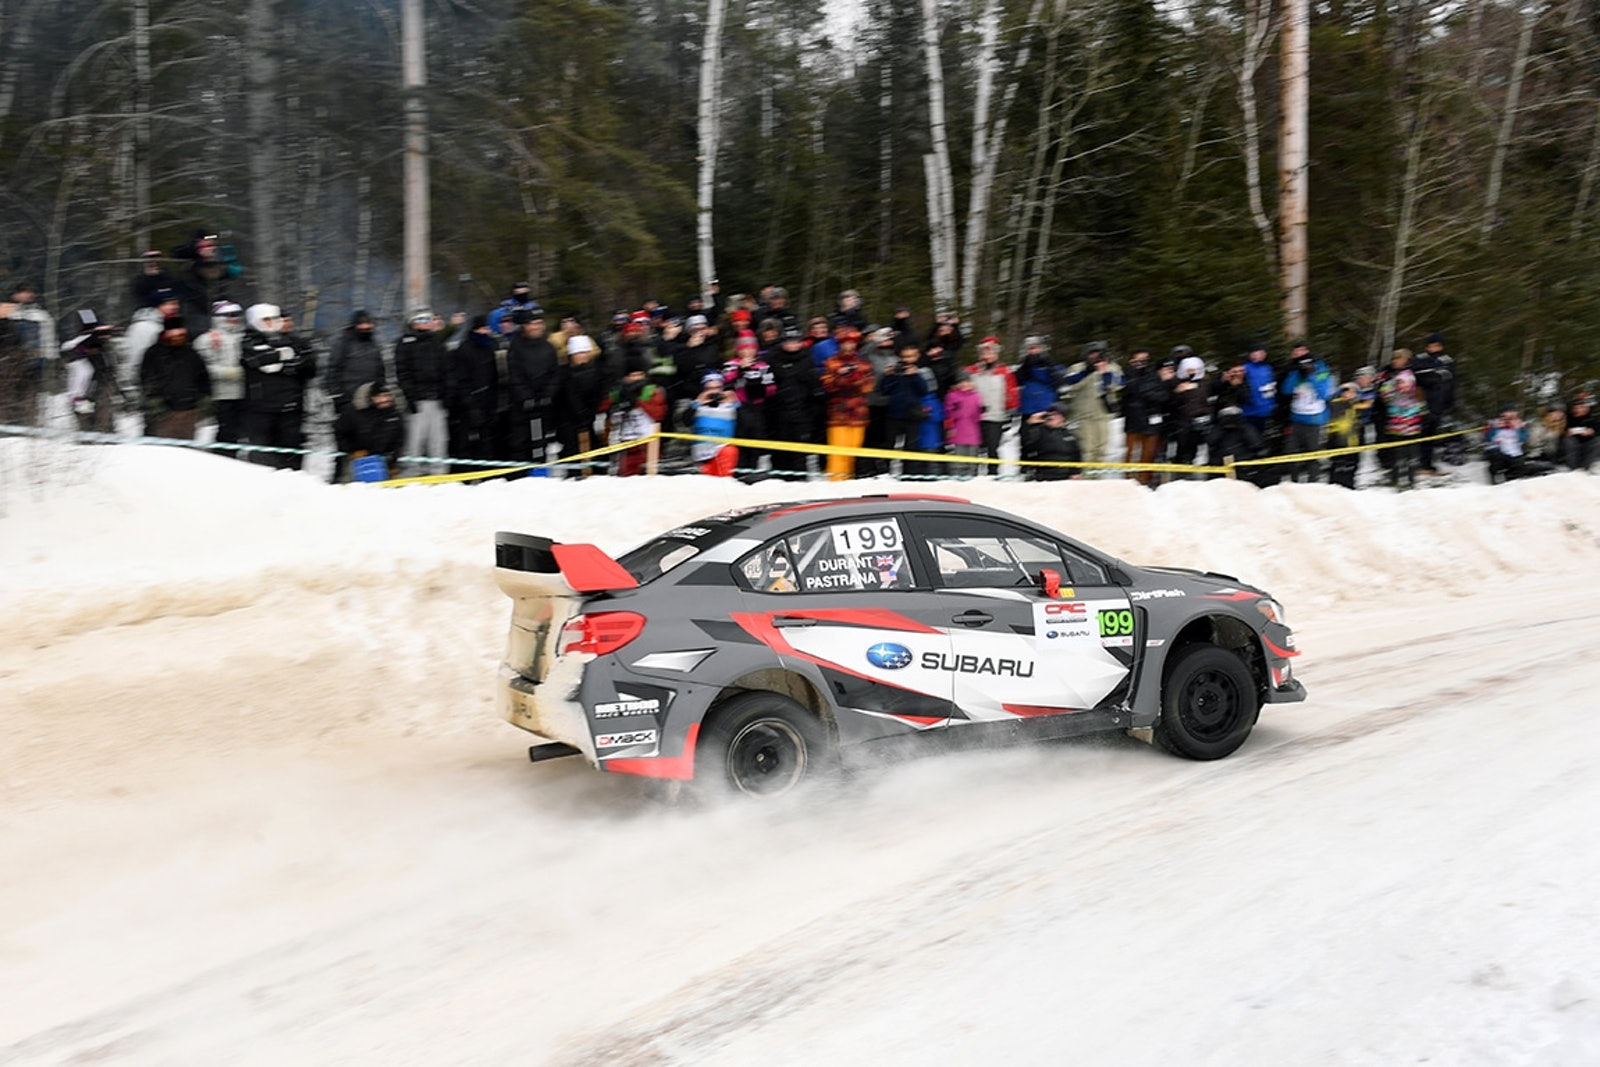 Travis_Pastrana_races_past_a_spectator_point_at_Rallye_Perce_Neige_2017.jpg